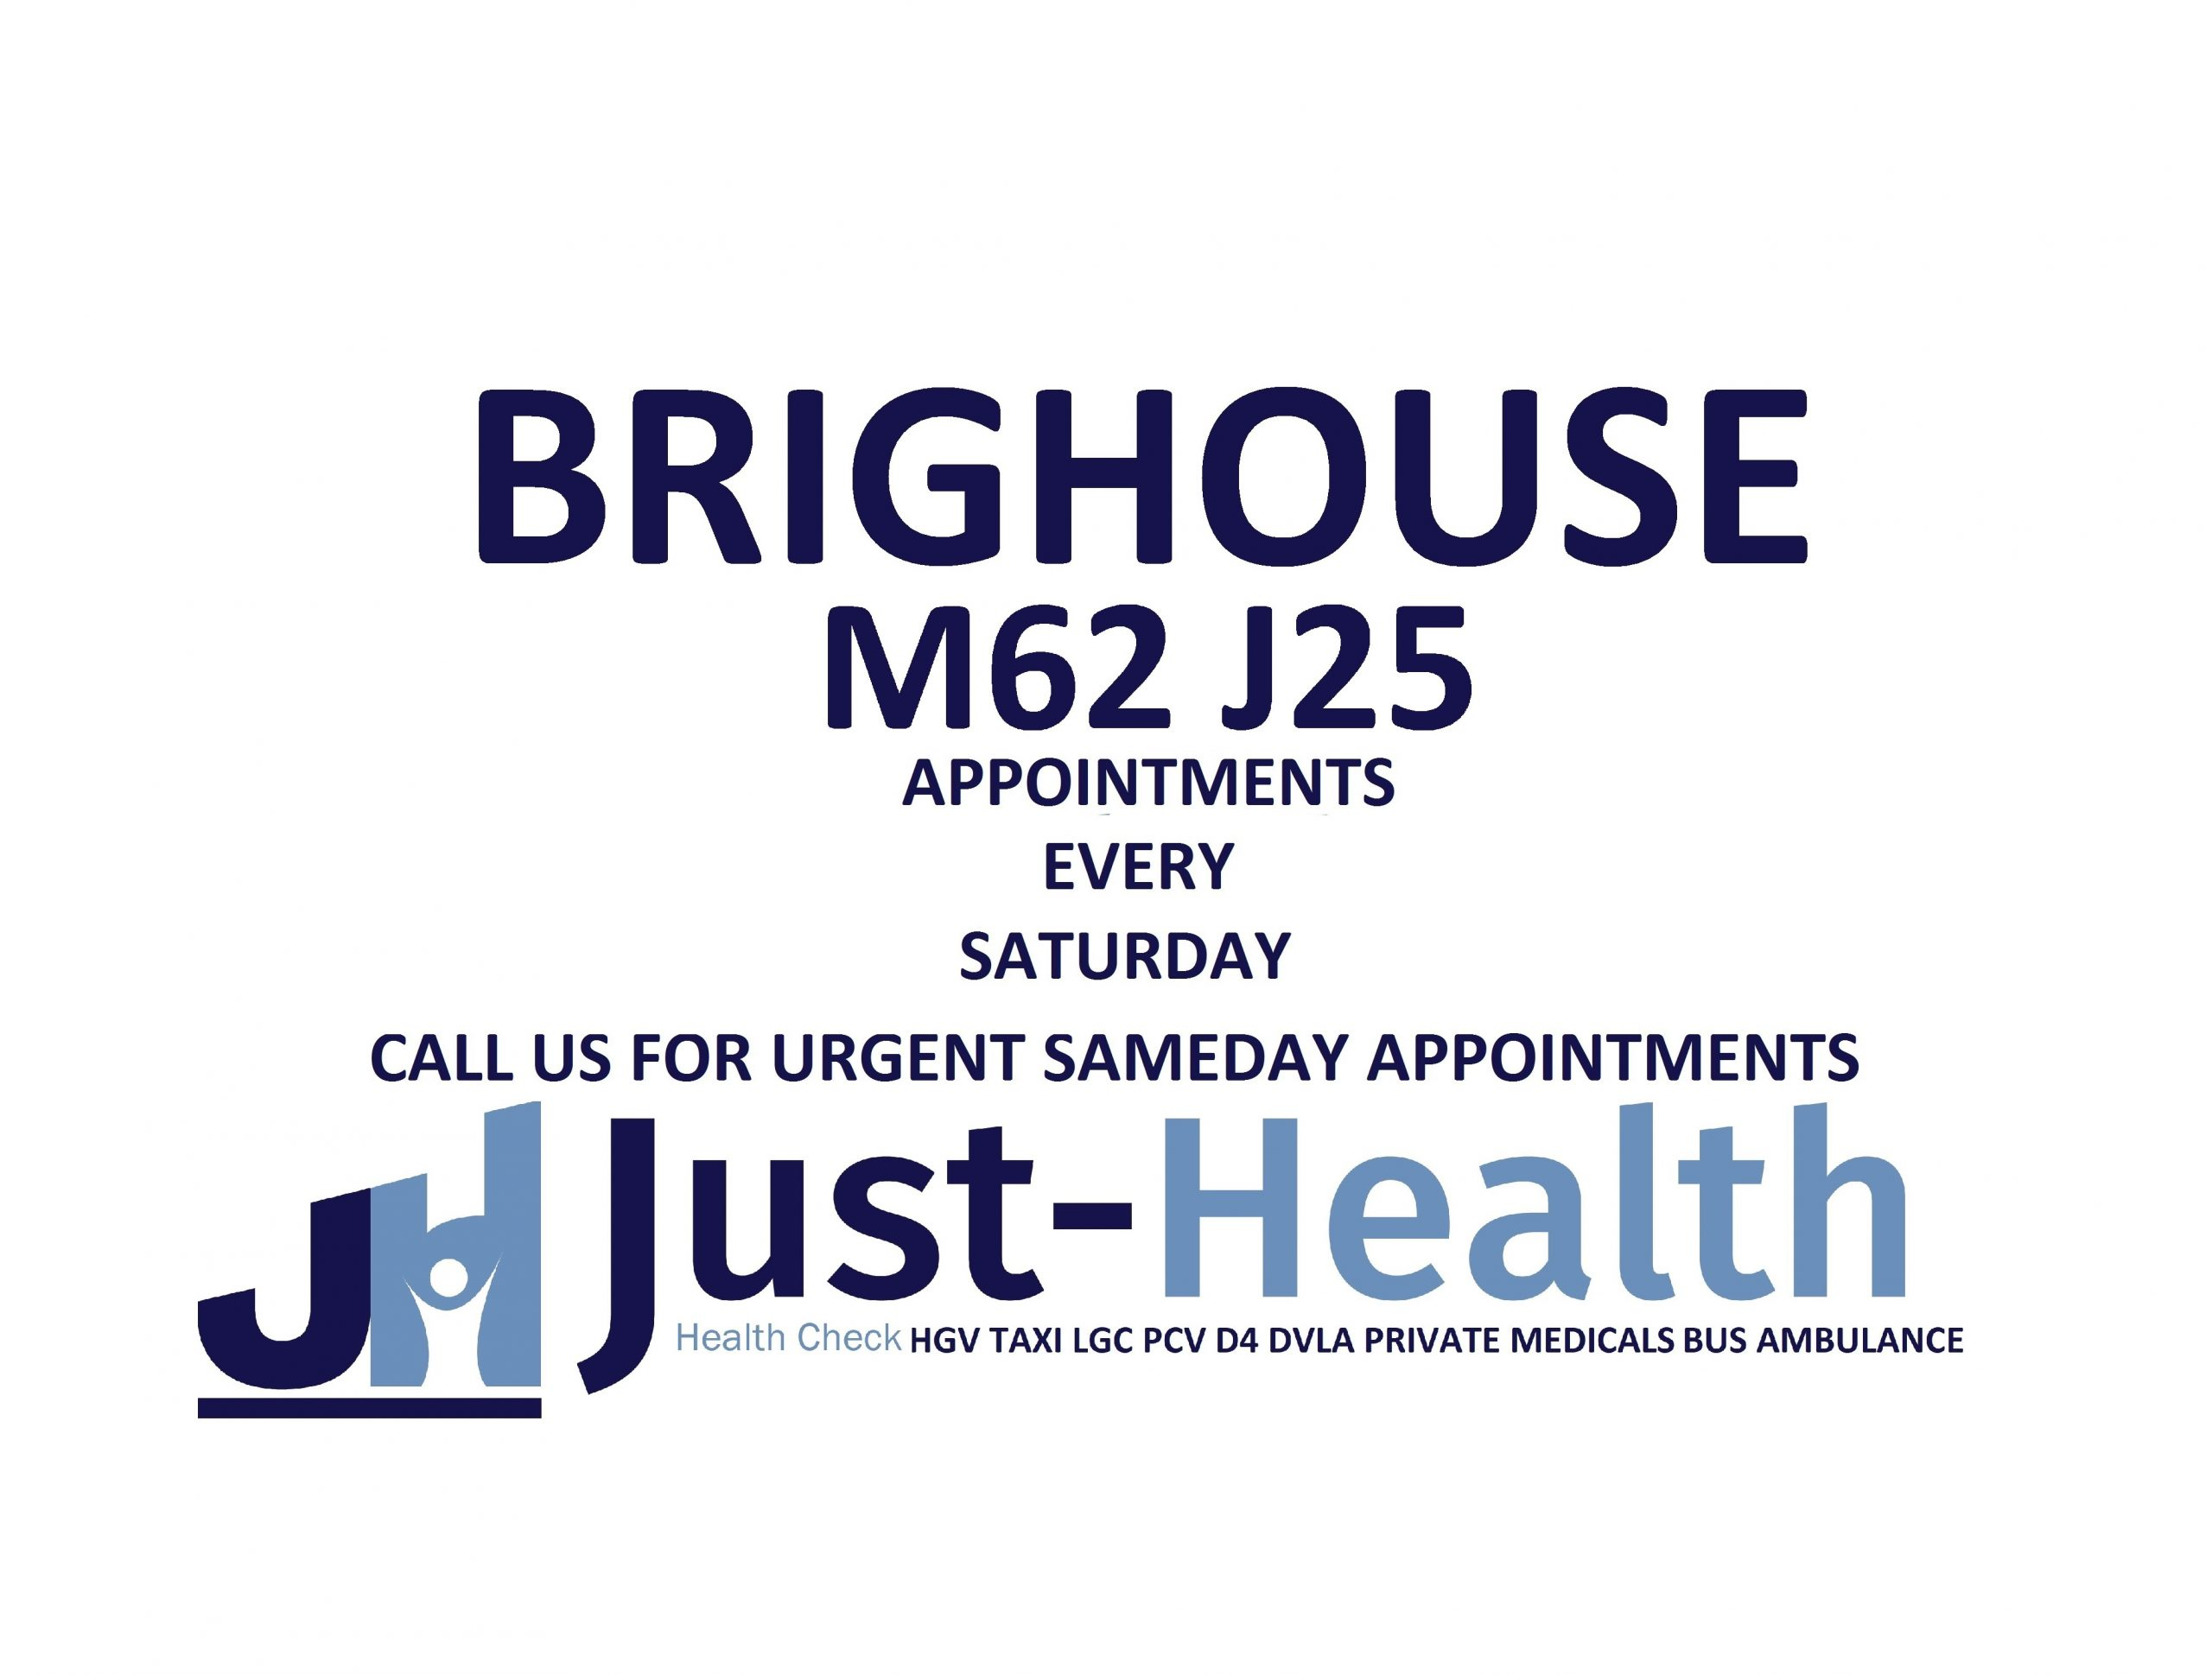 BRIGHOUSE yorkshire huddersfield hgv medical just health